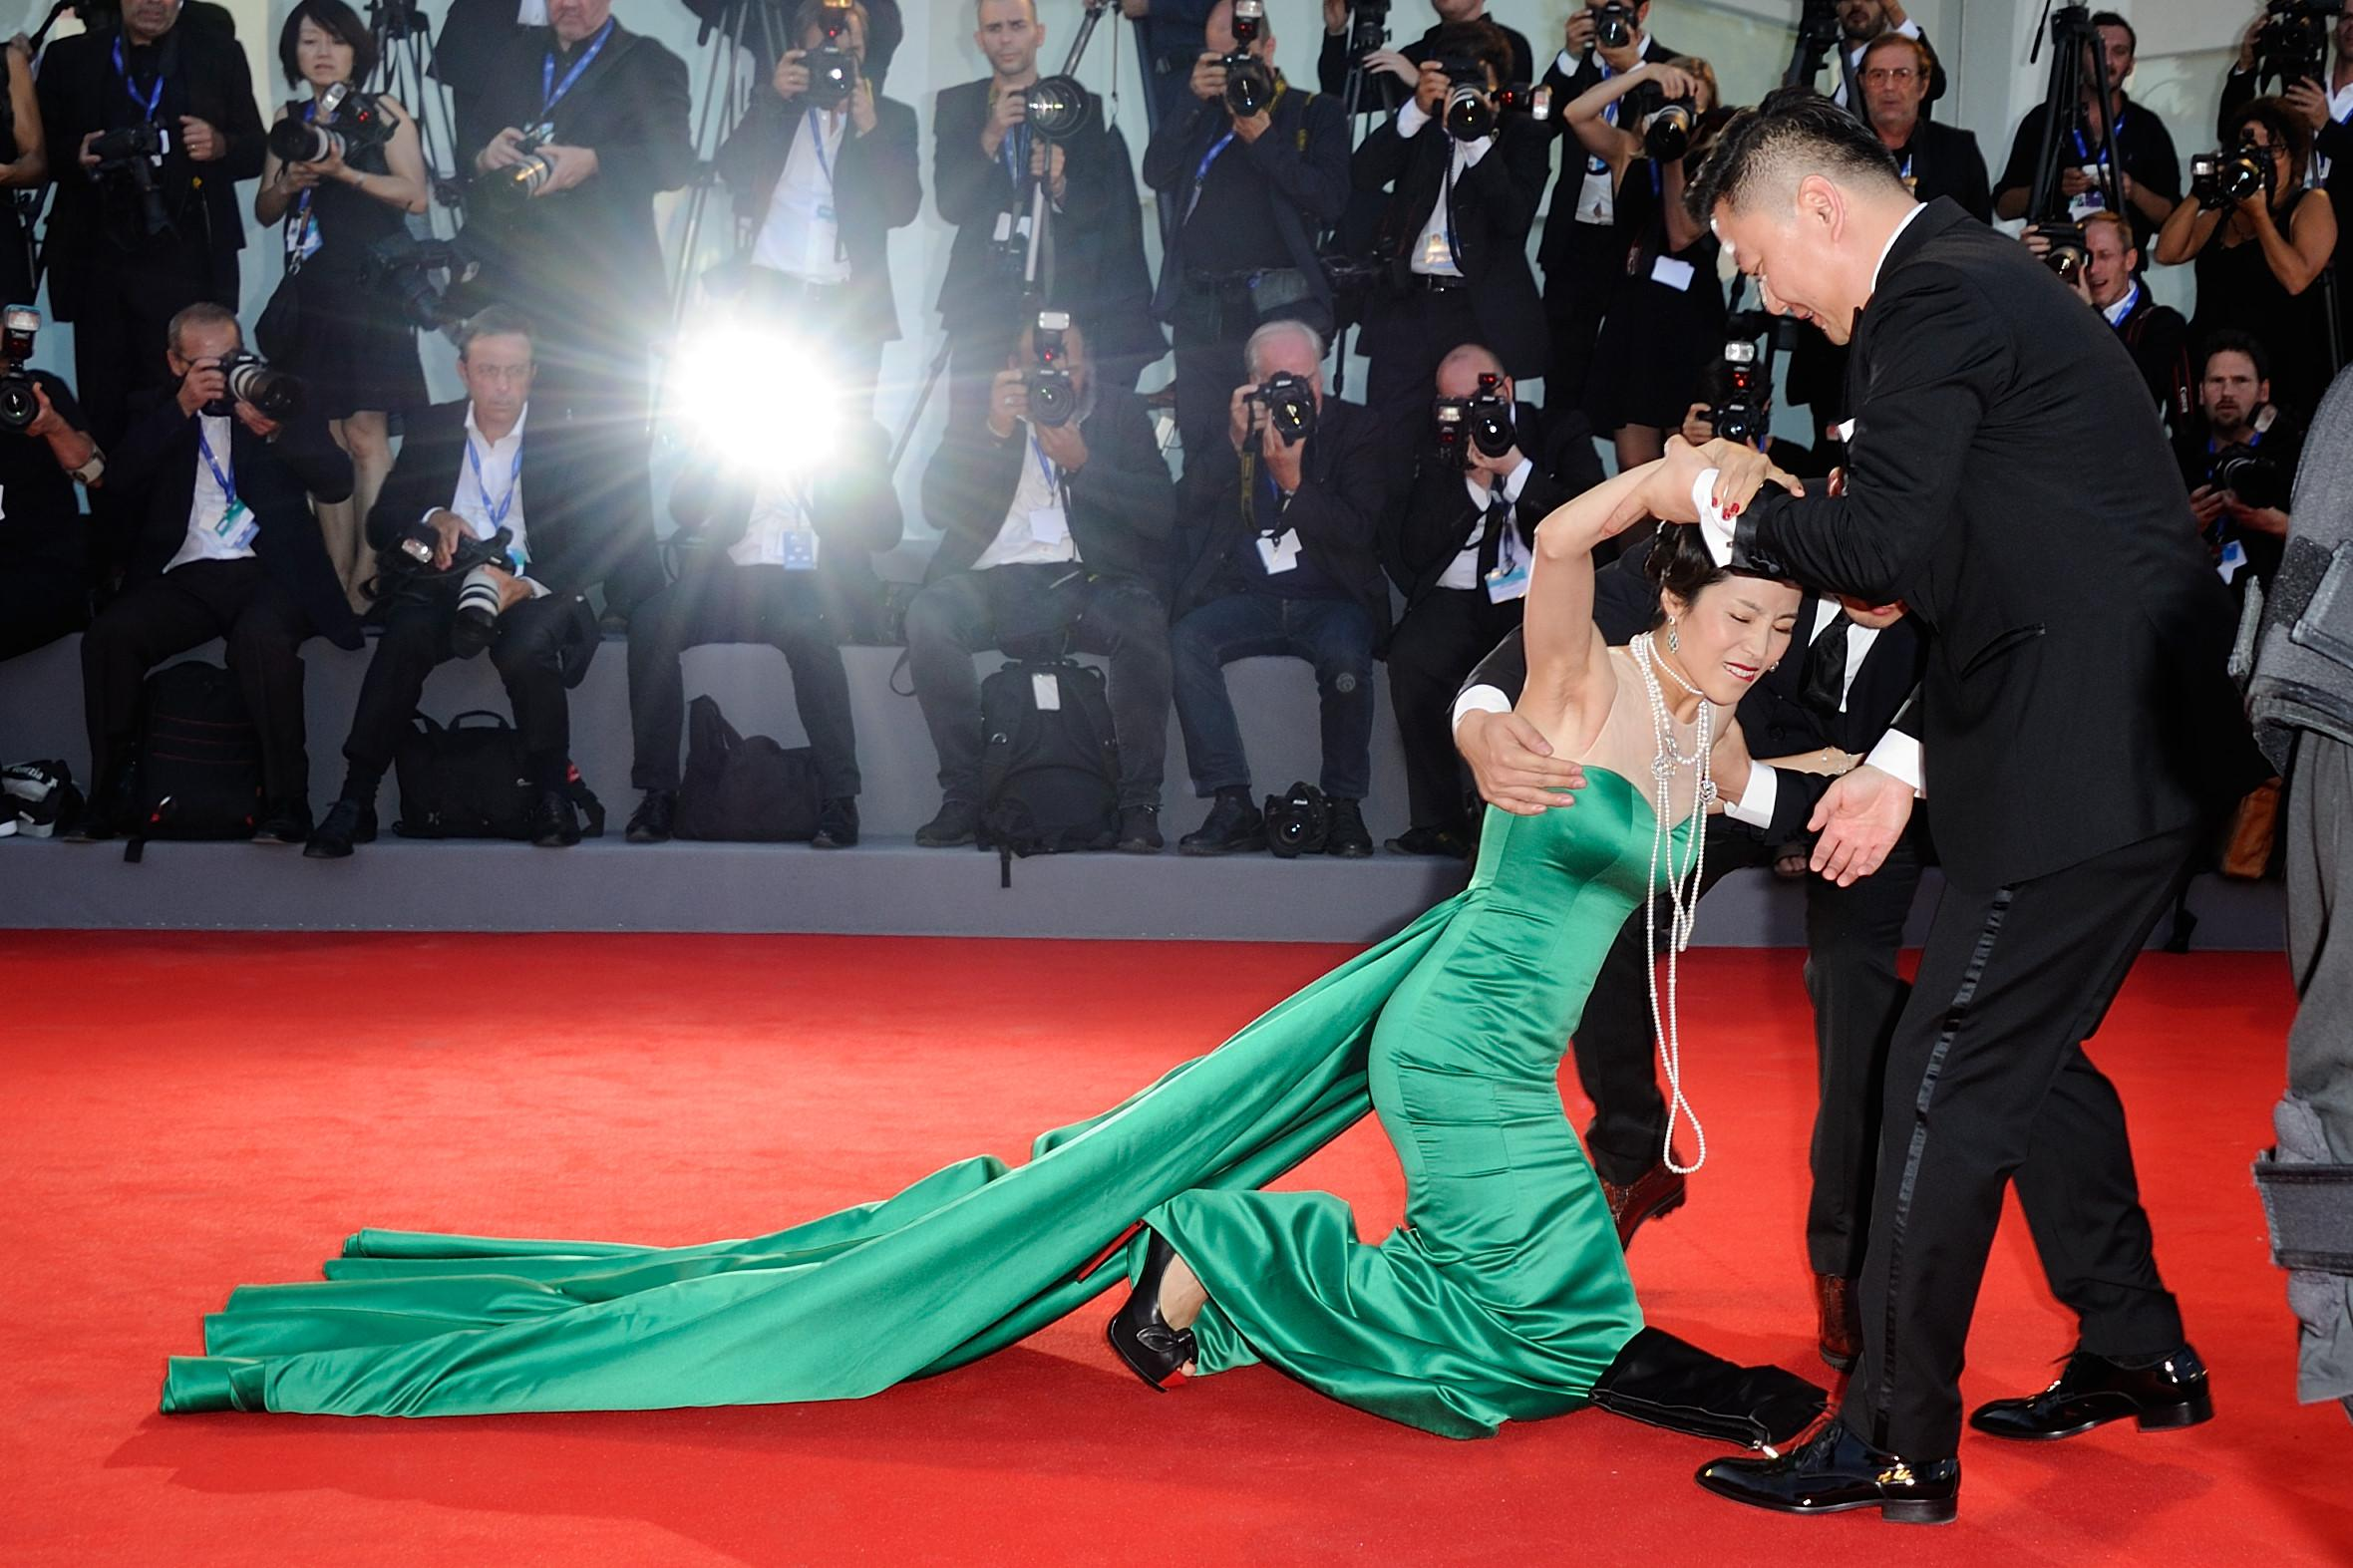 Jing Ke falls on the red carpet during the 'The Light Between Oceans' Premiere on the Lido in Venice, Italy as part of the 73rd Mostra, Venice International Film Festival on September 01, 2016. Photo by Aurore Marechal/ABACAPRESS.COM L'attrice Jing Ke cade sul red carpet a VeneziaMostra del cinema di Venezia Prima del film 'The Light Between Oceans' 561211LaPresse  -- Only Italy